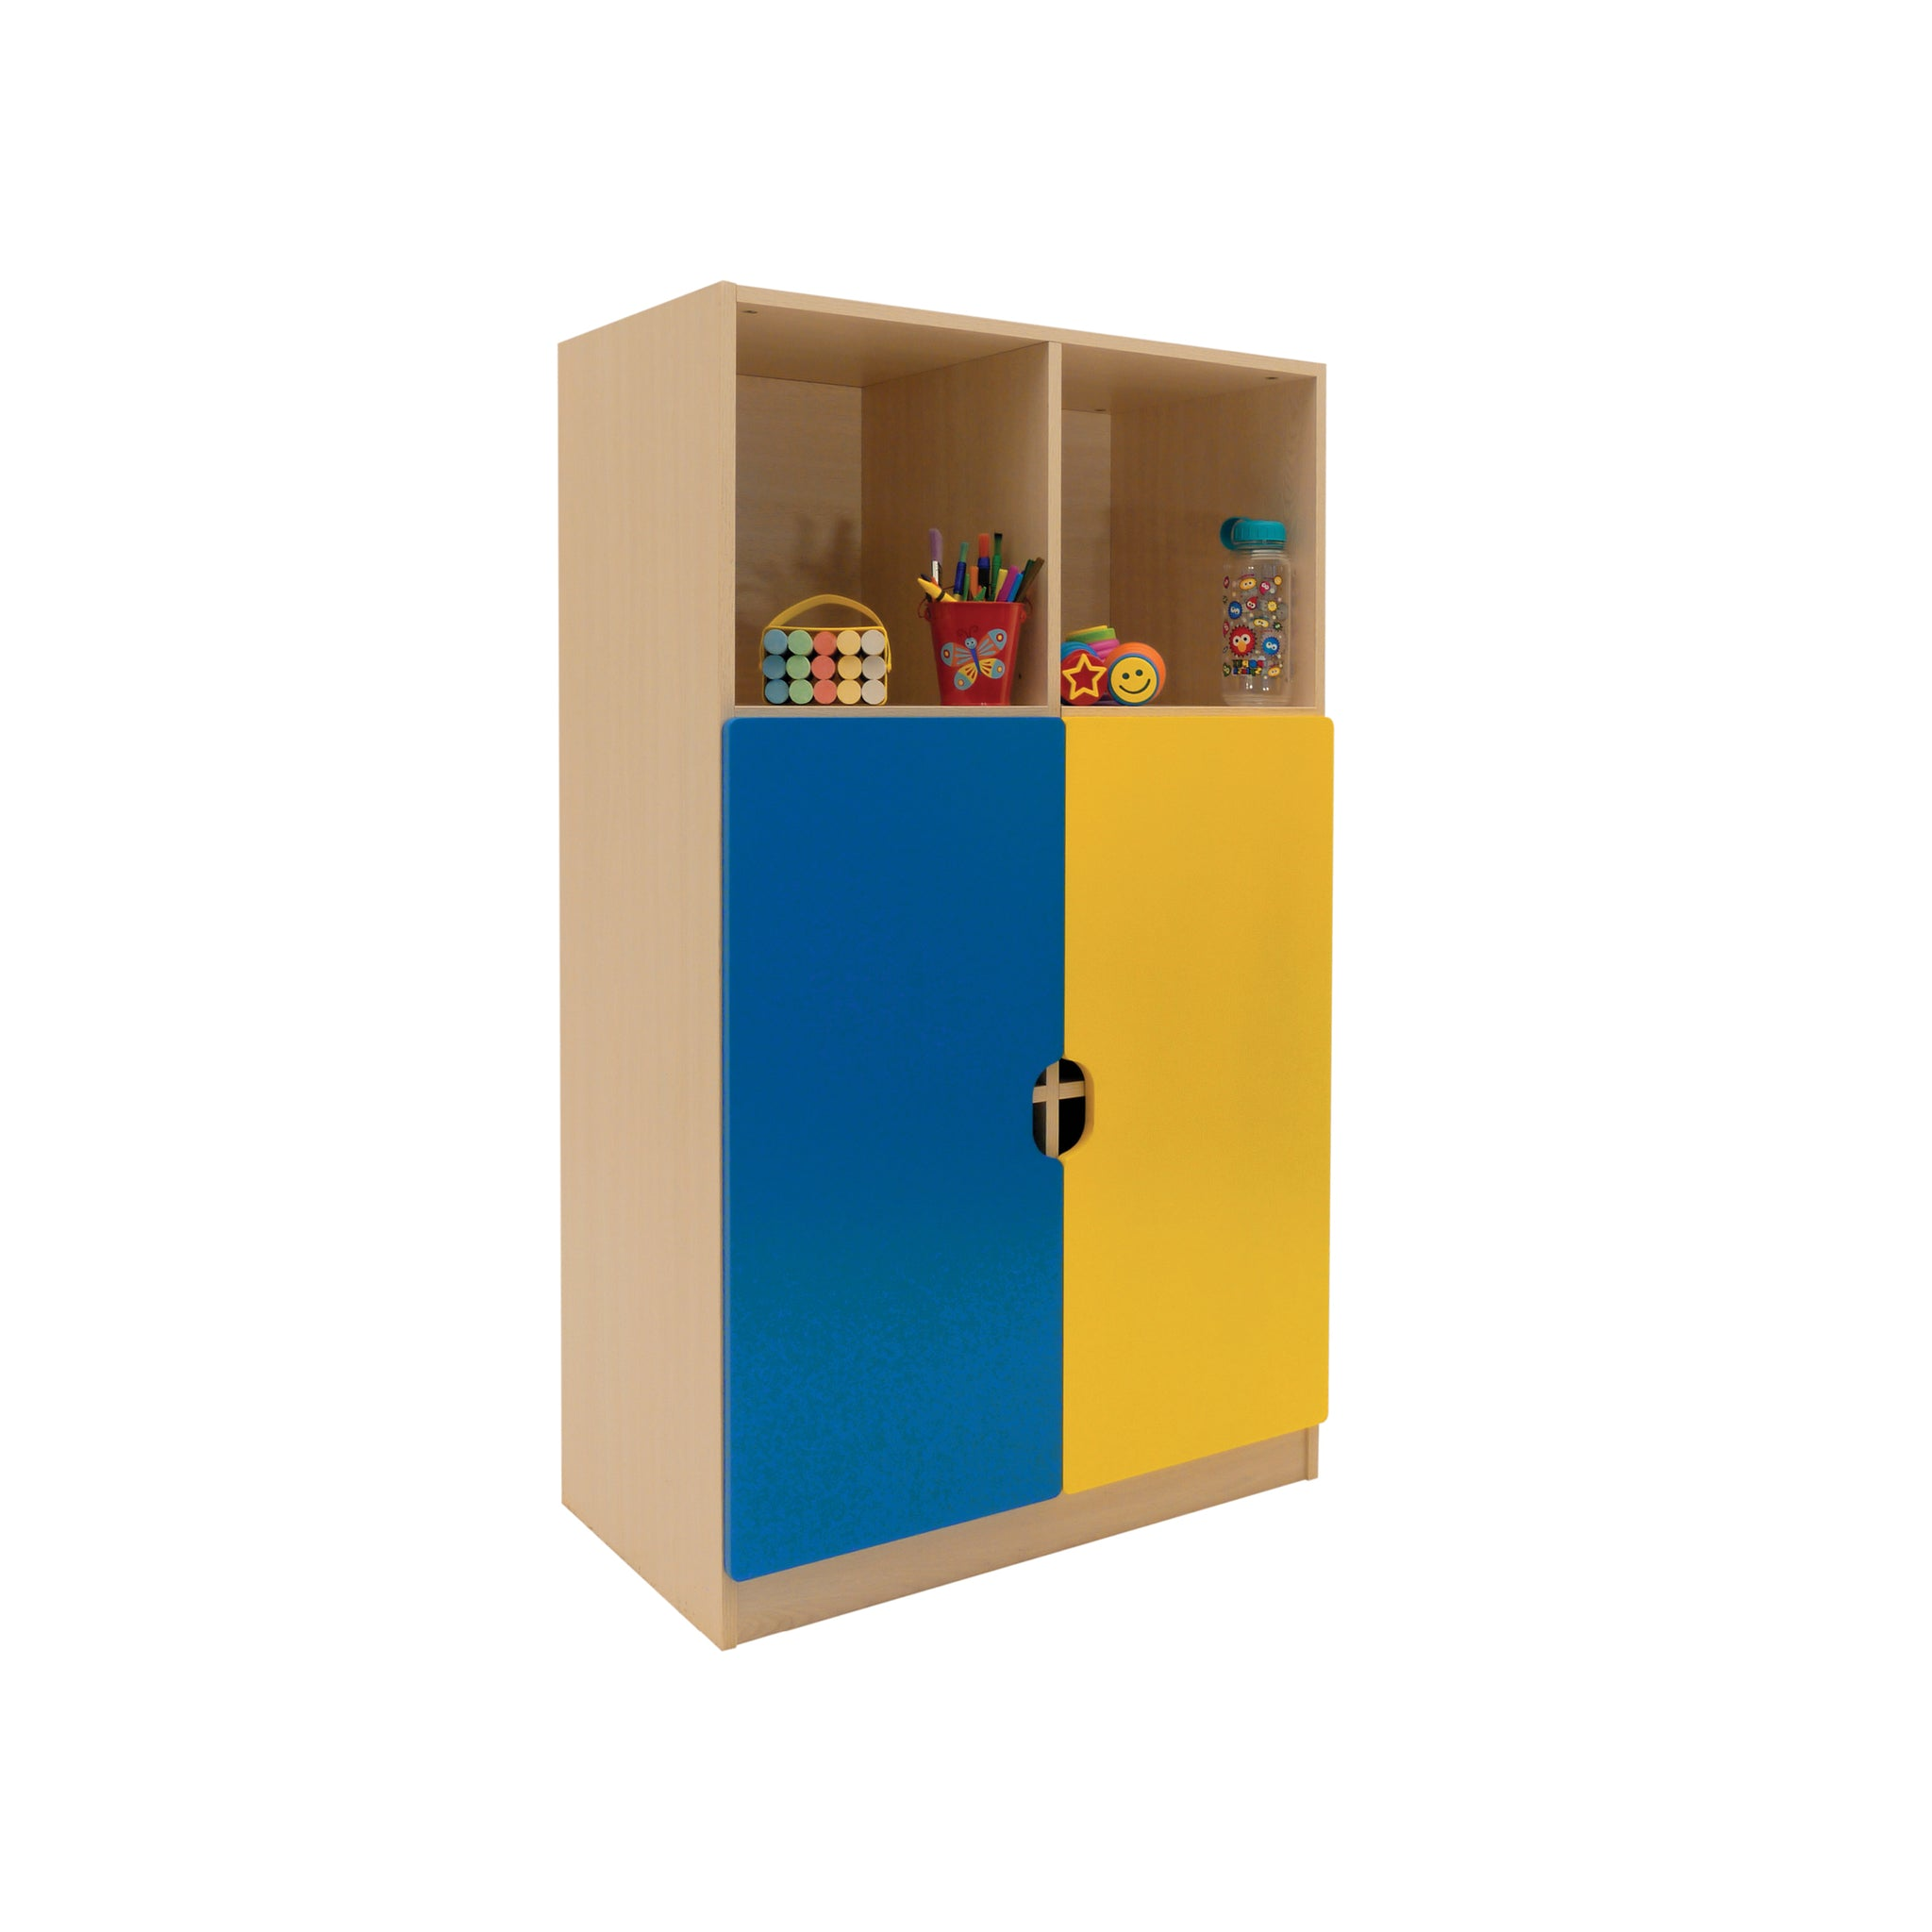 Hedcor 6 Compartment School storage unit